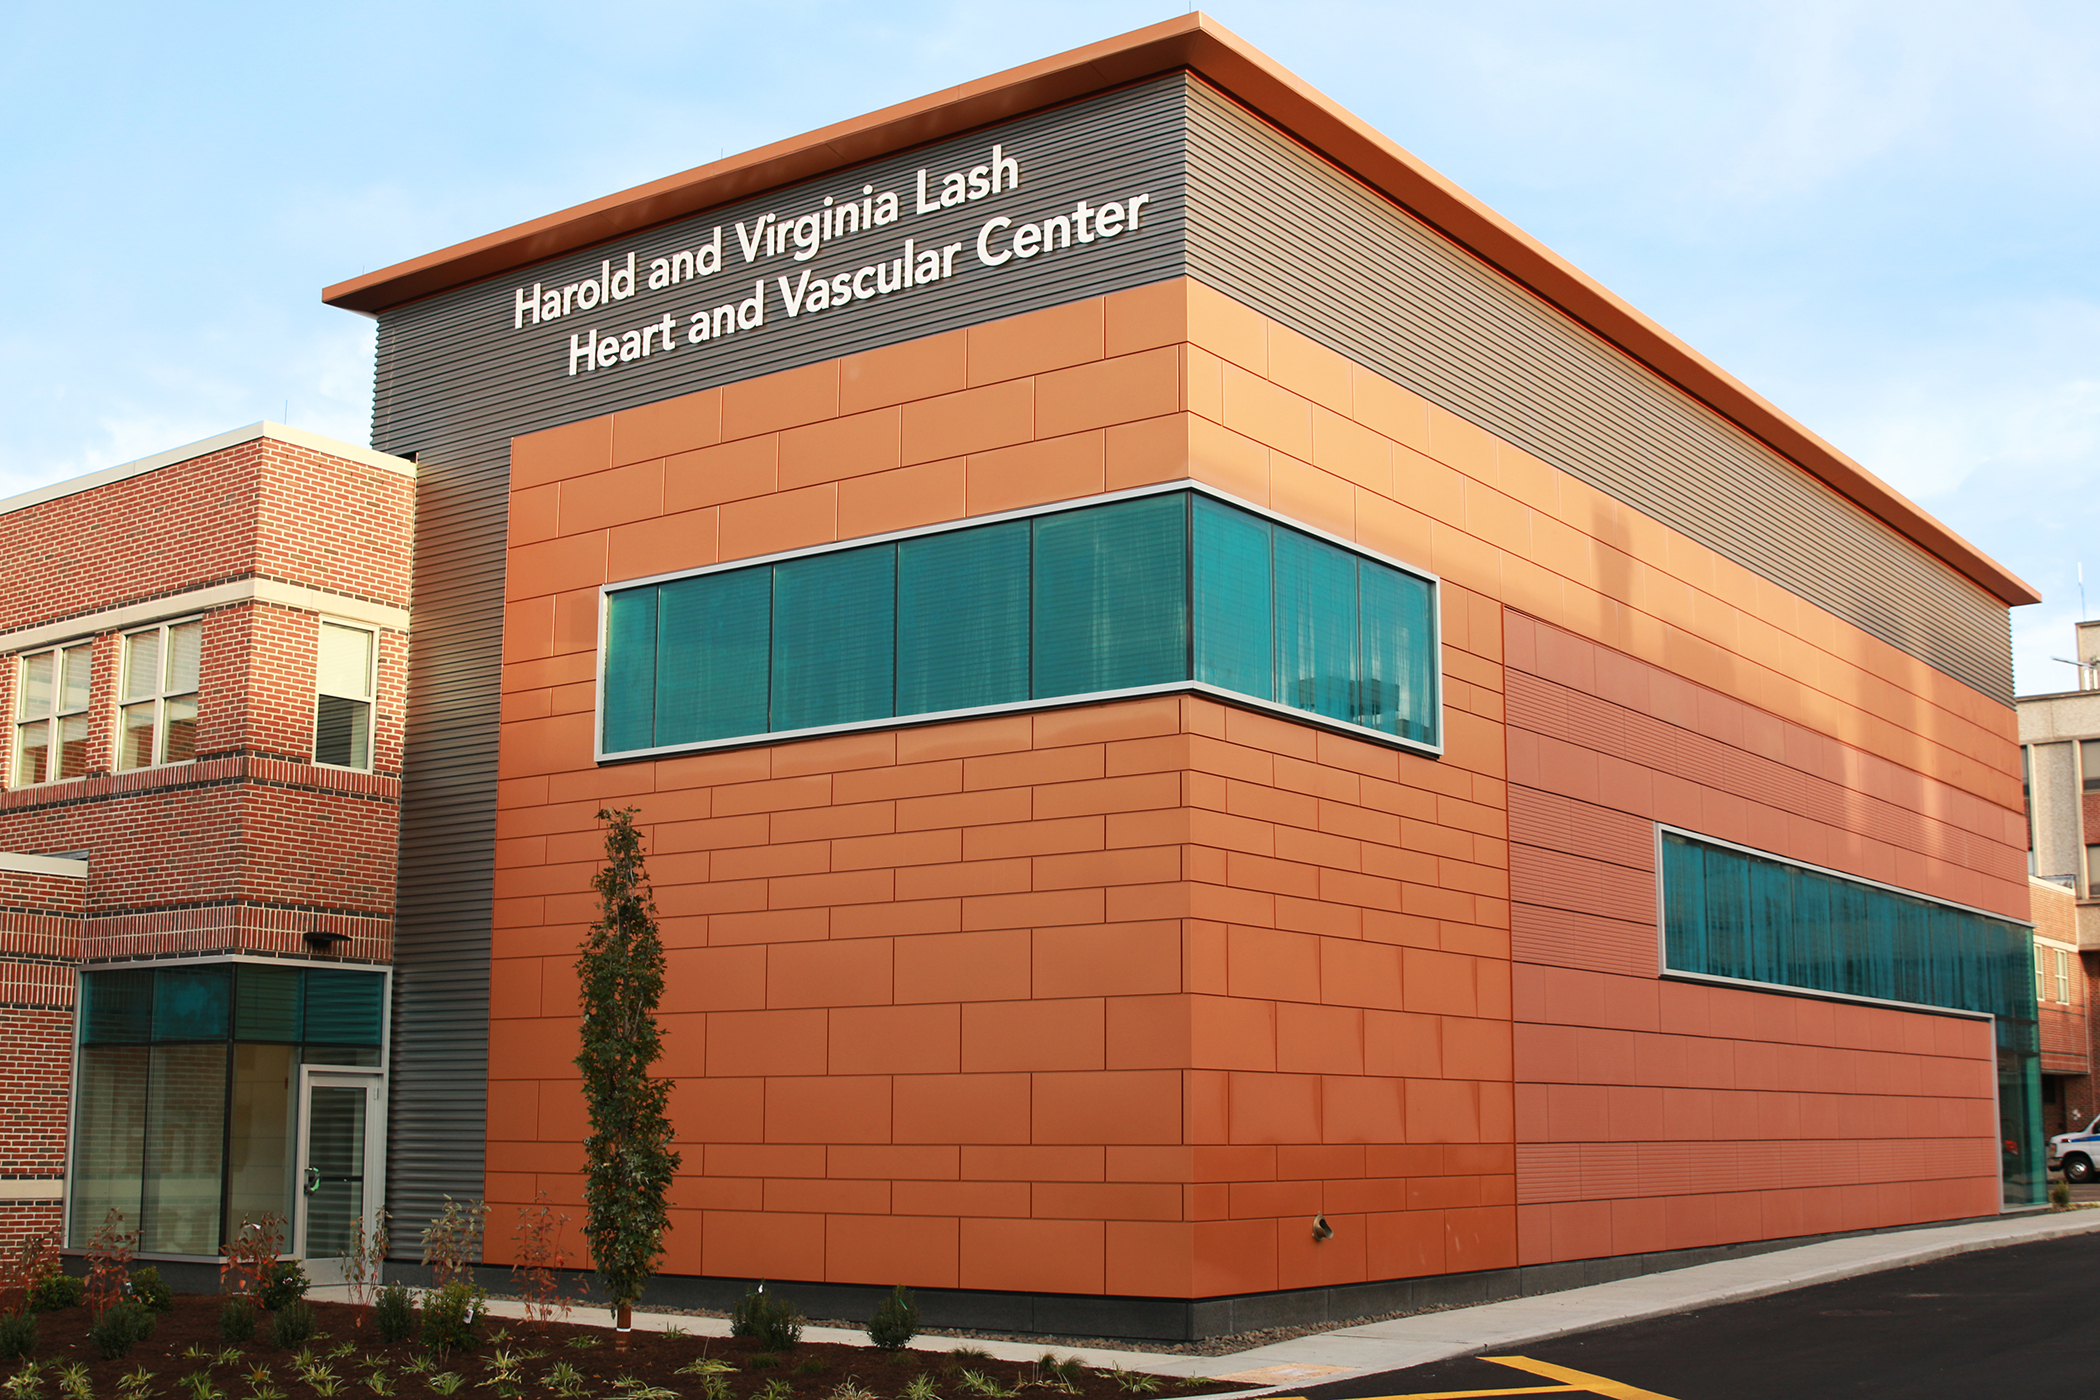 Southcoast Health unveils Harold and Virginia Lash Heart and